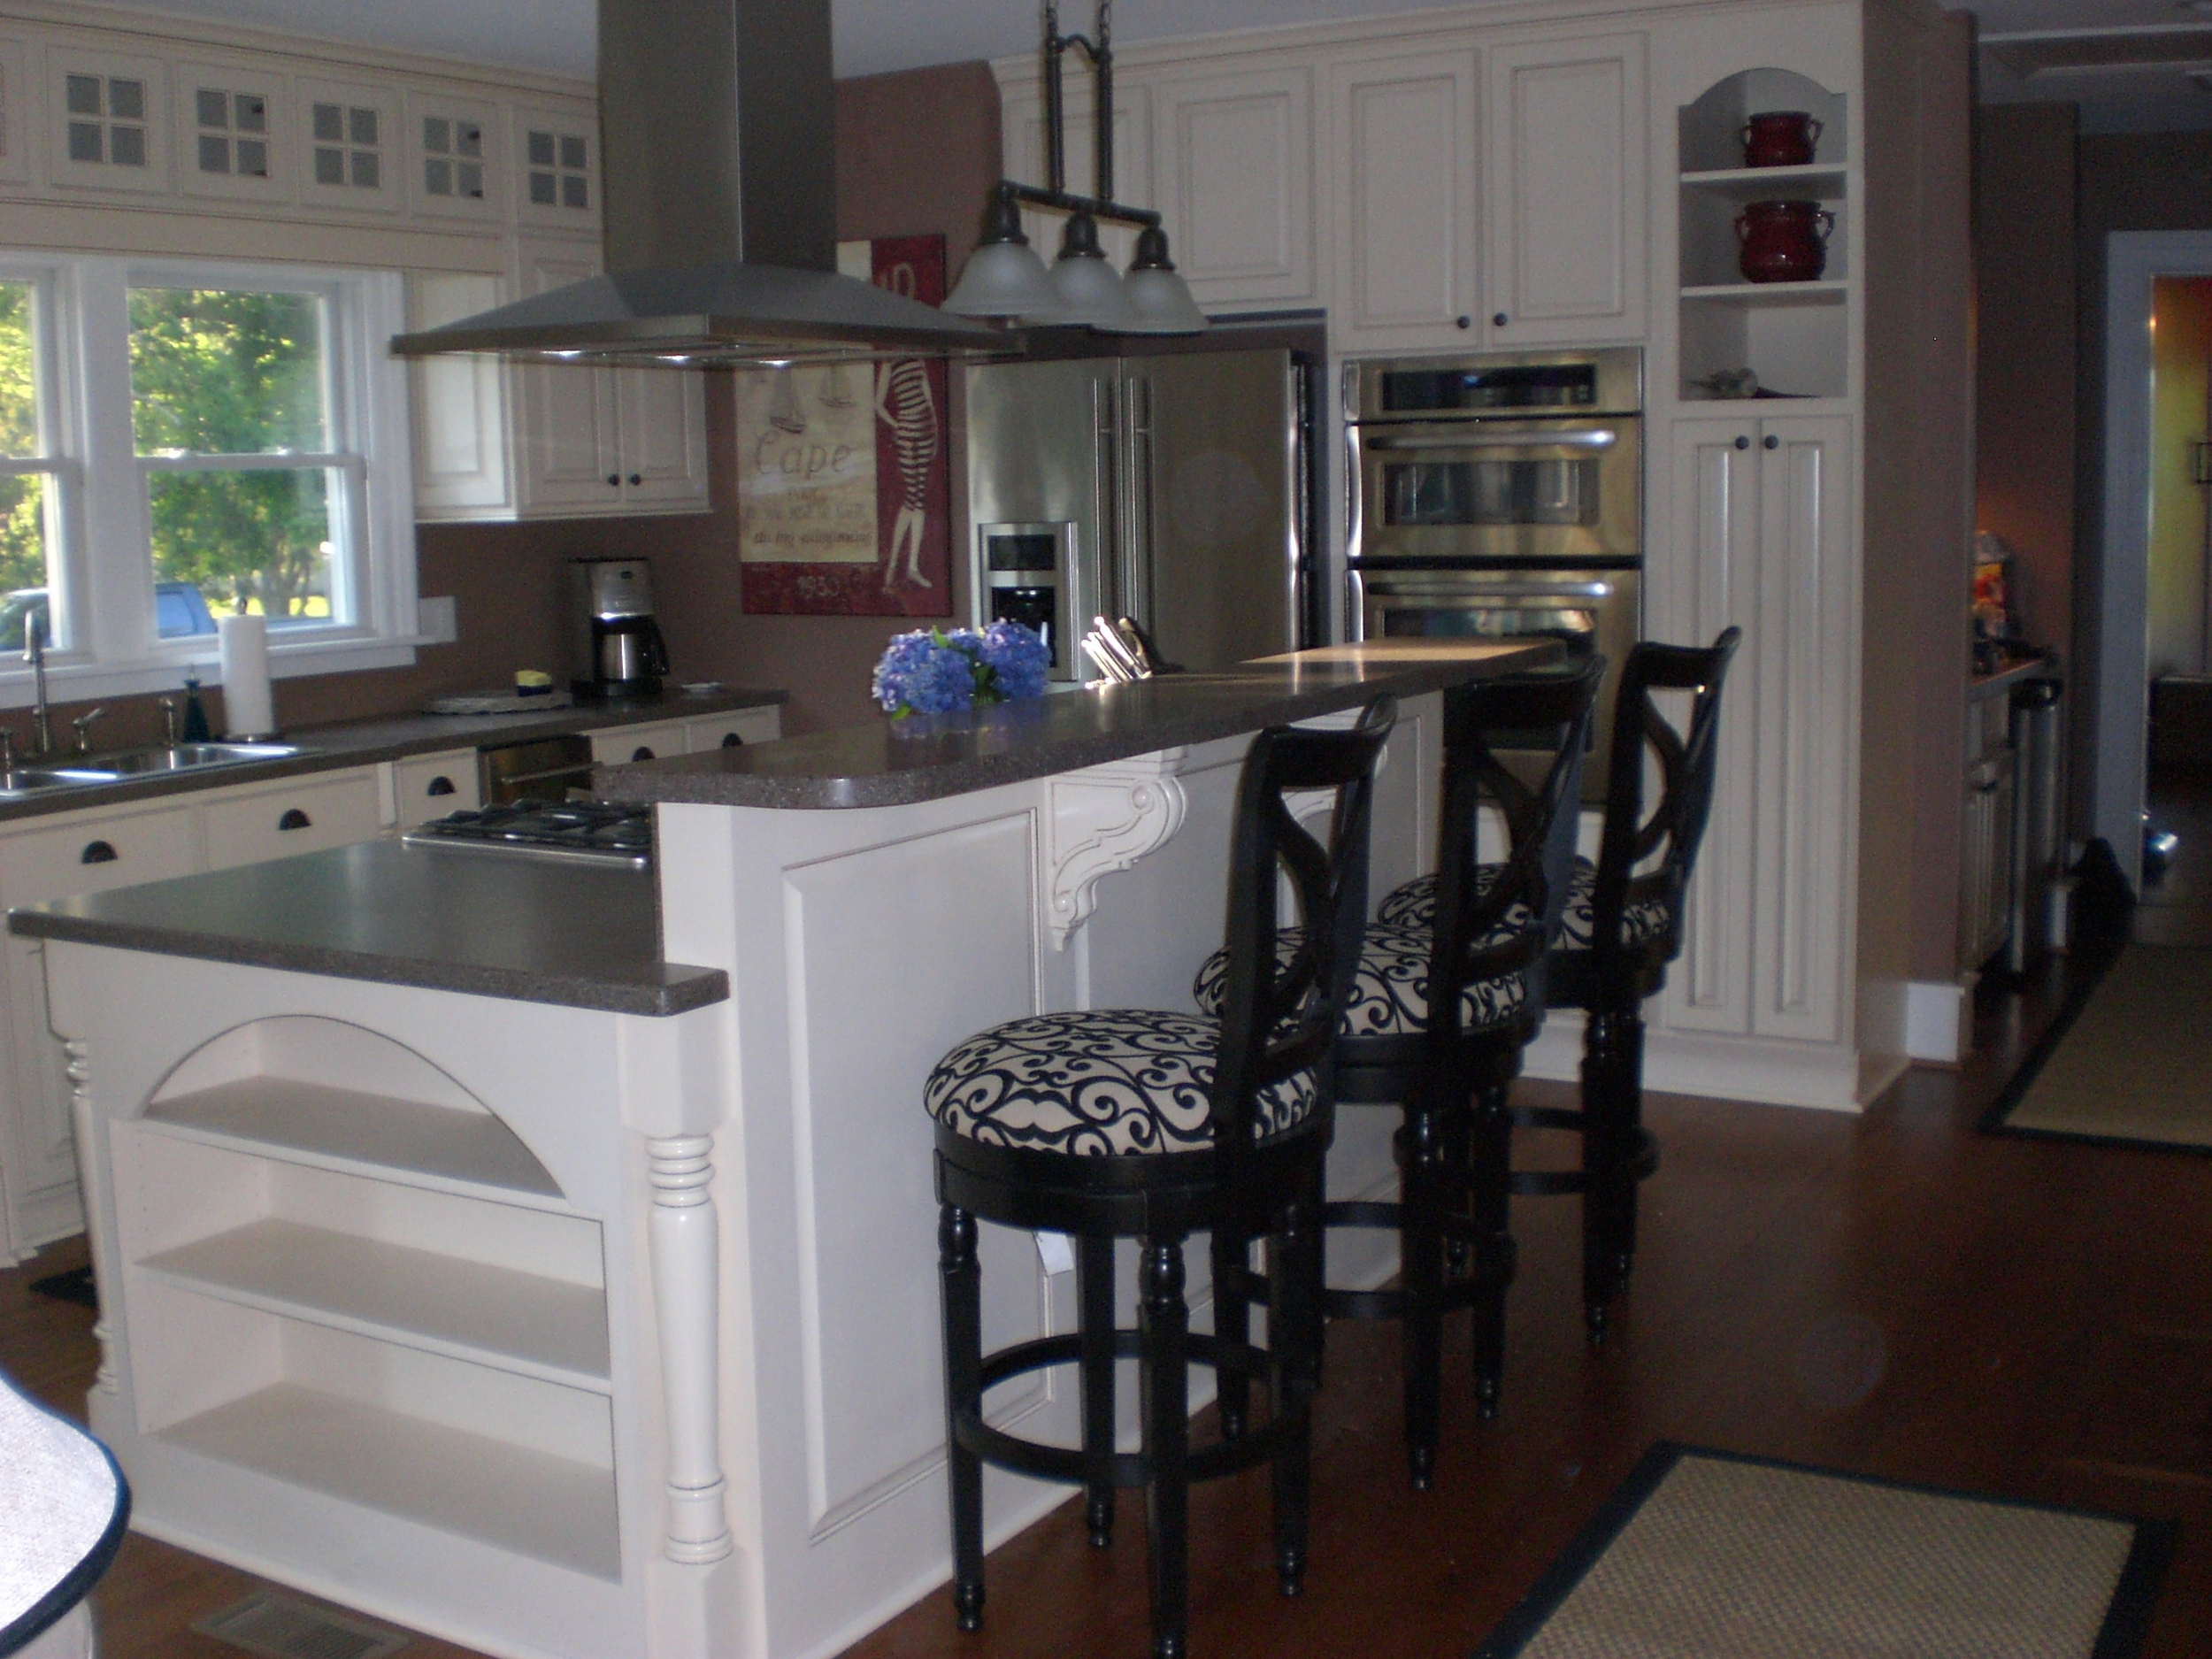 Superb Islands Images Kitchens Islands Custom Kitchen Islands Custom Kitchen Islands Bull Restoration Kitchens Tables kitchen Kitchens With Islands